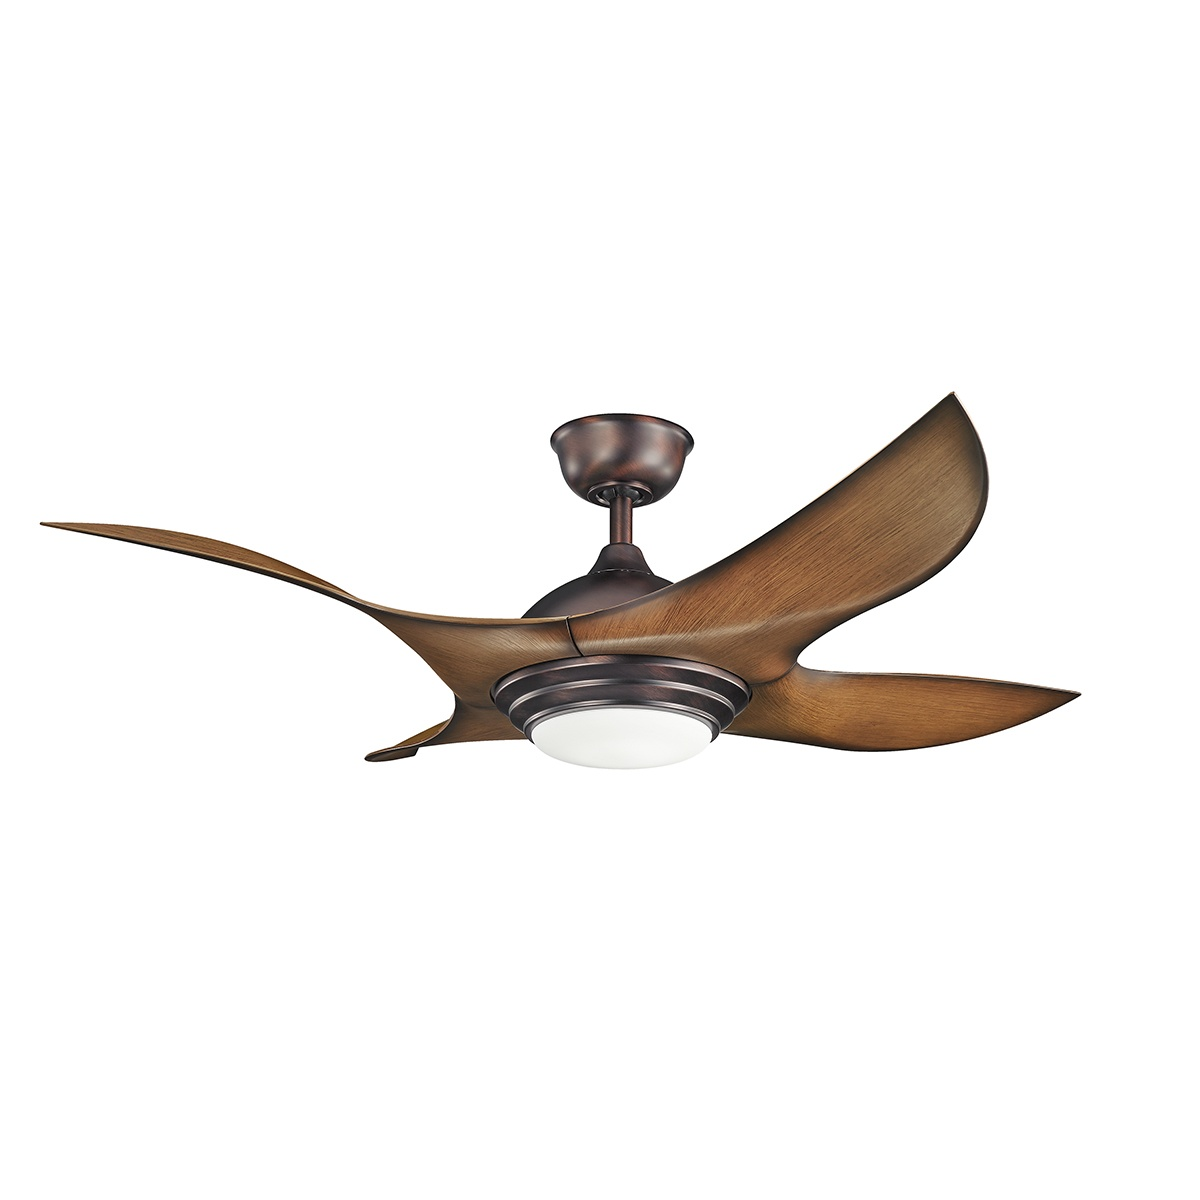 52 inchCeiling Fan from the Shuriken collection by Kichler 300209OBB